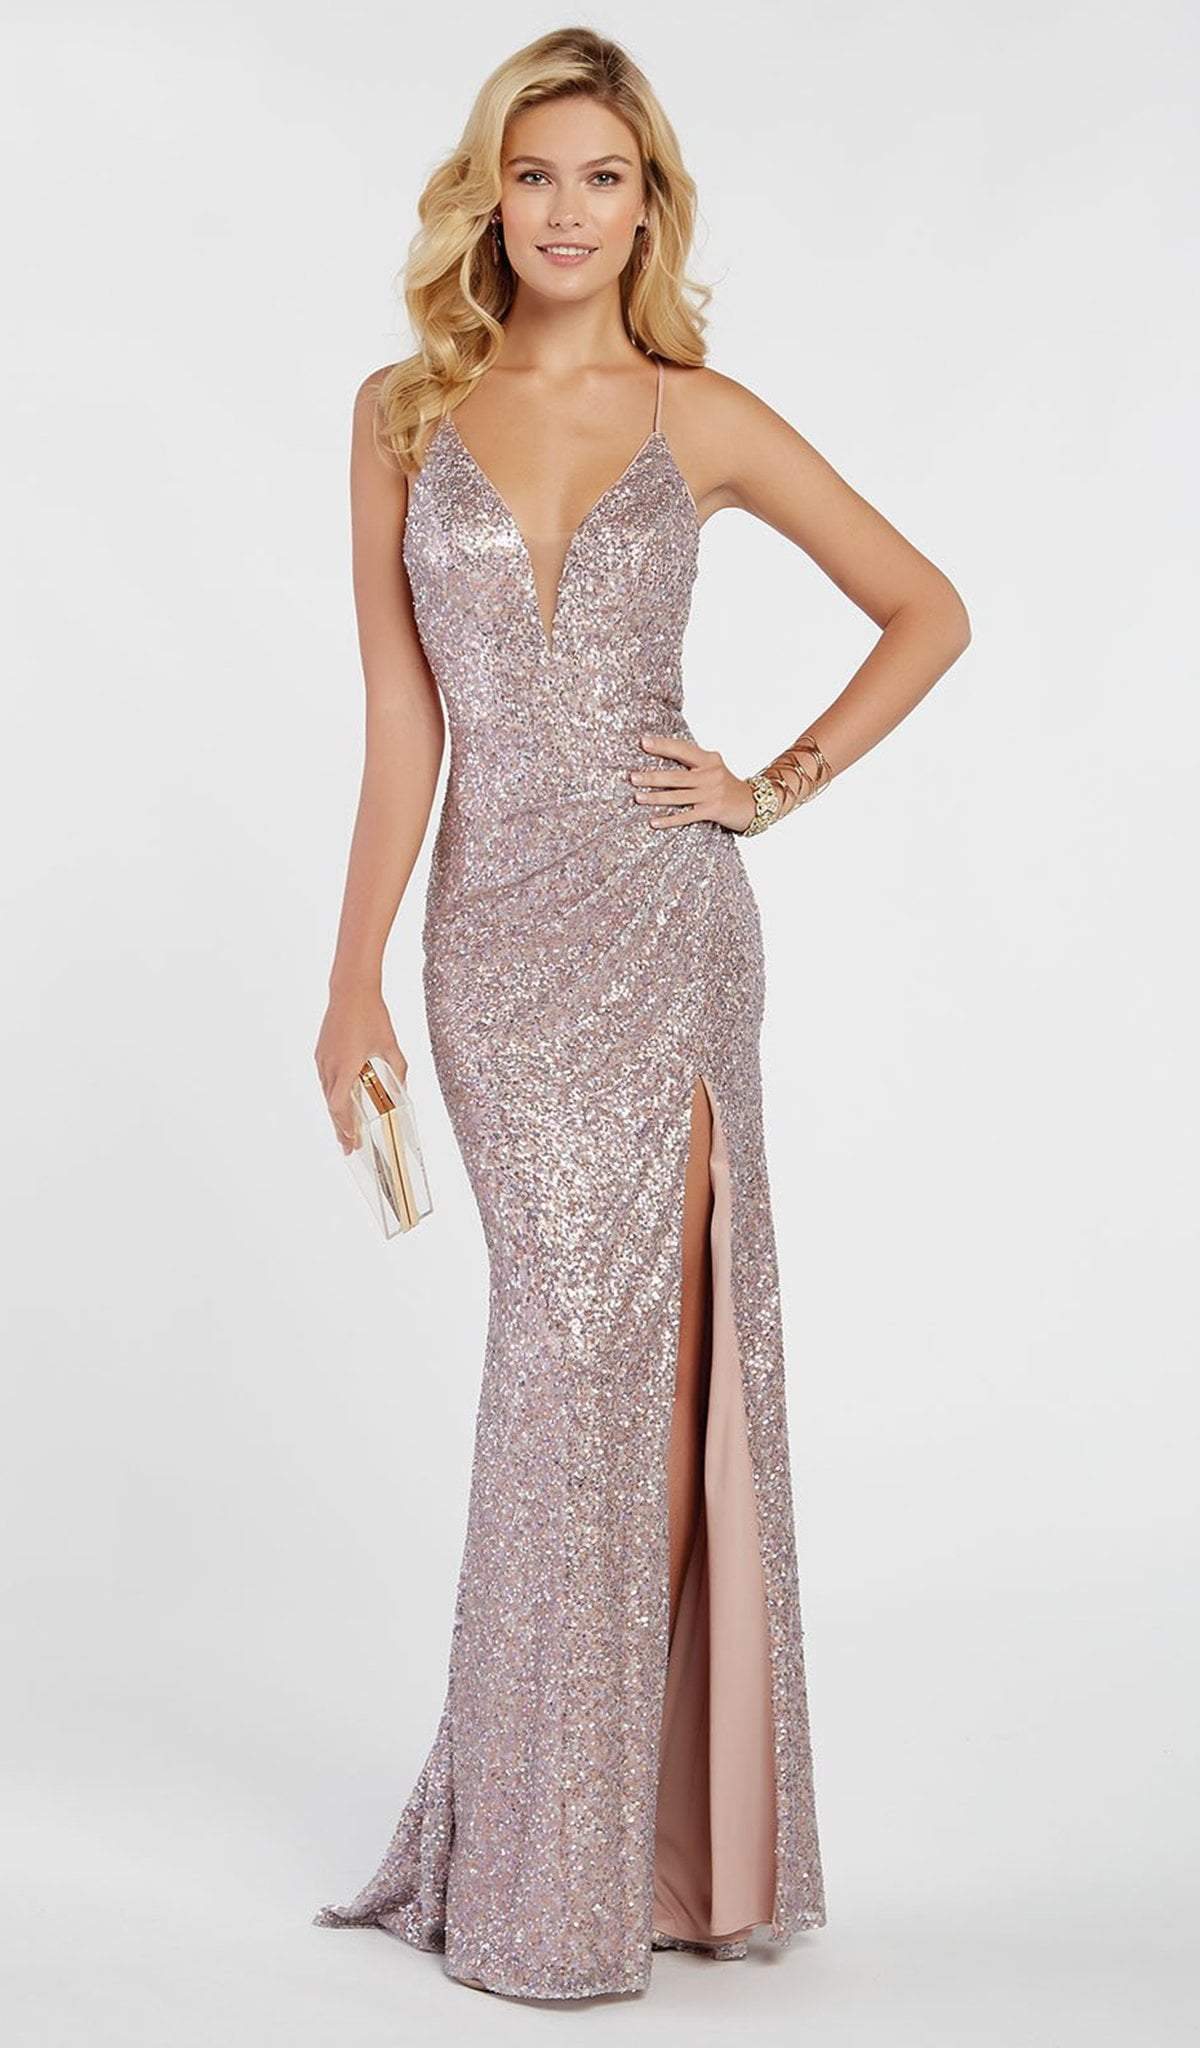 Alyce Paris - 60304 Sequined Deep V-neck Trumpet Dress In Pink